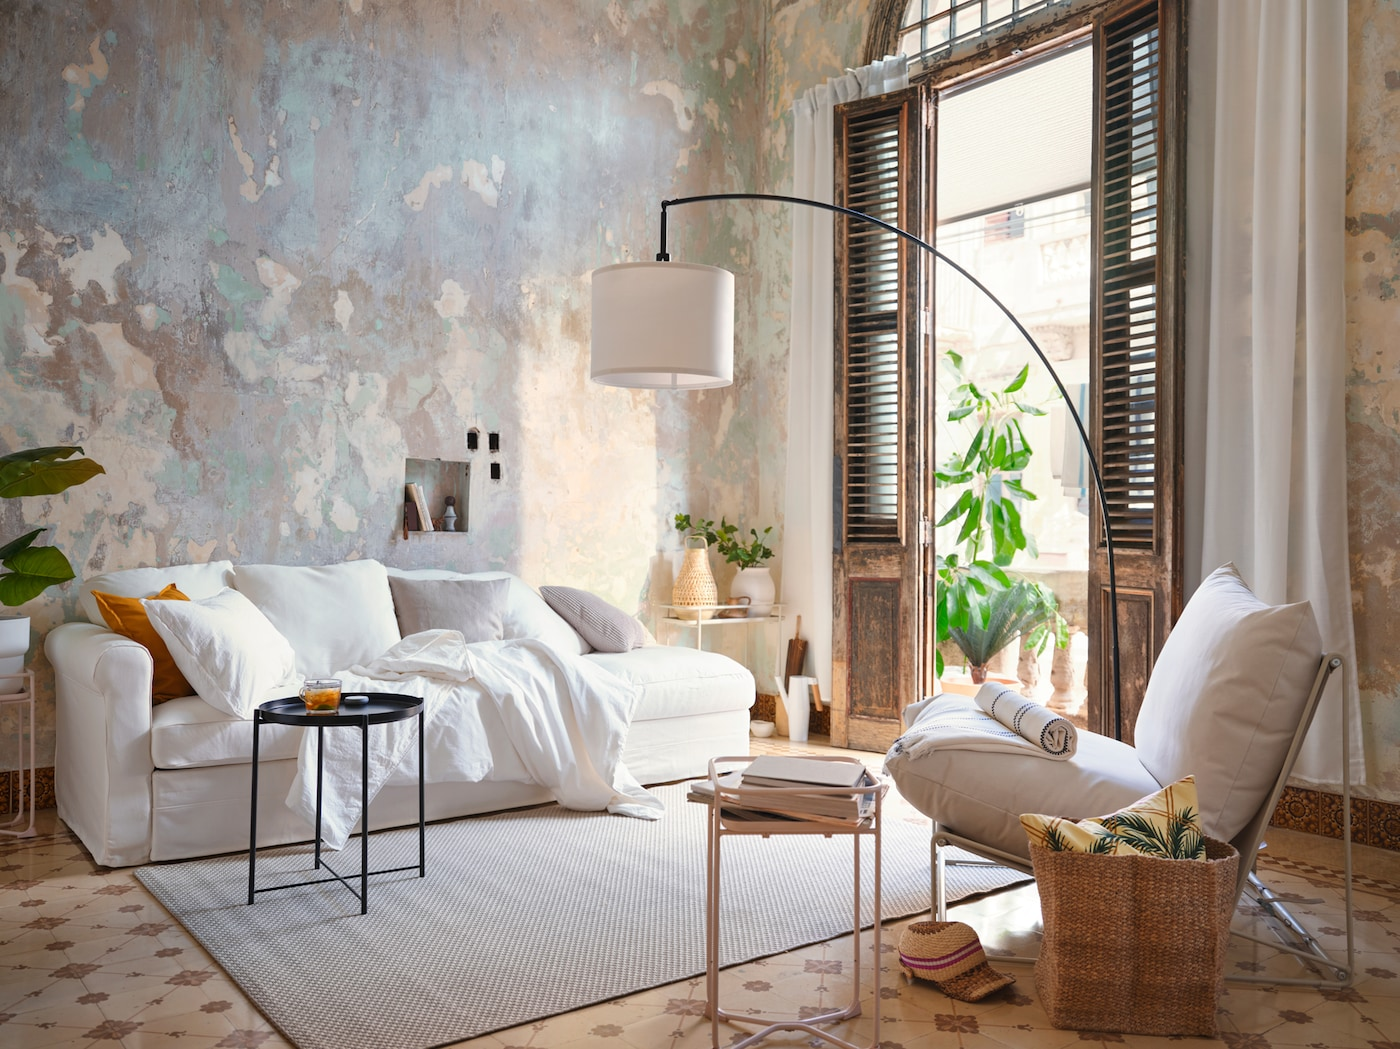 Link to IDEAS blog 'Retreat yourself inside and out' - image of a white sofa in a sunlit neutral living room.